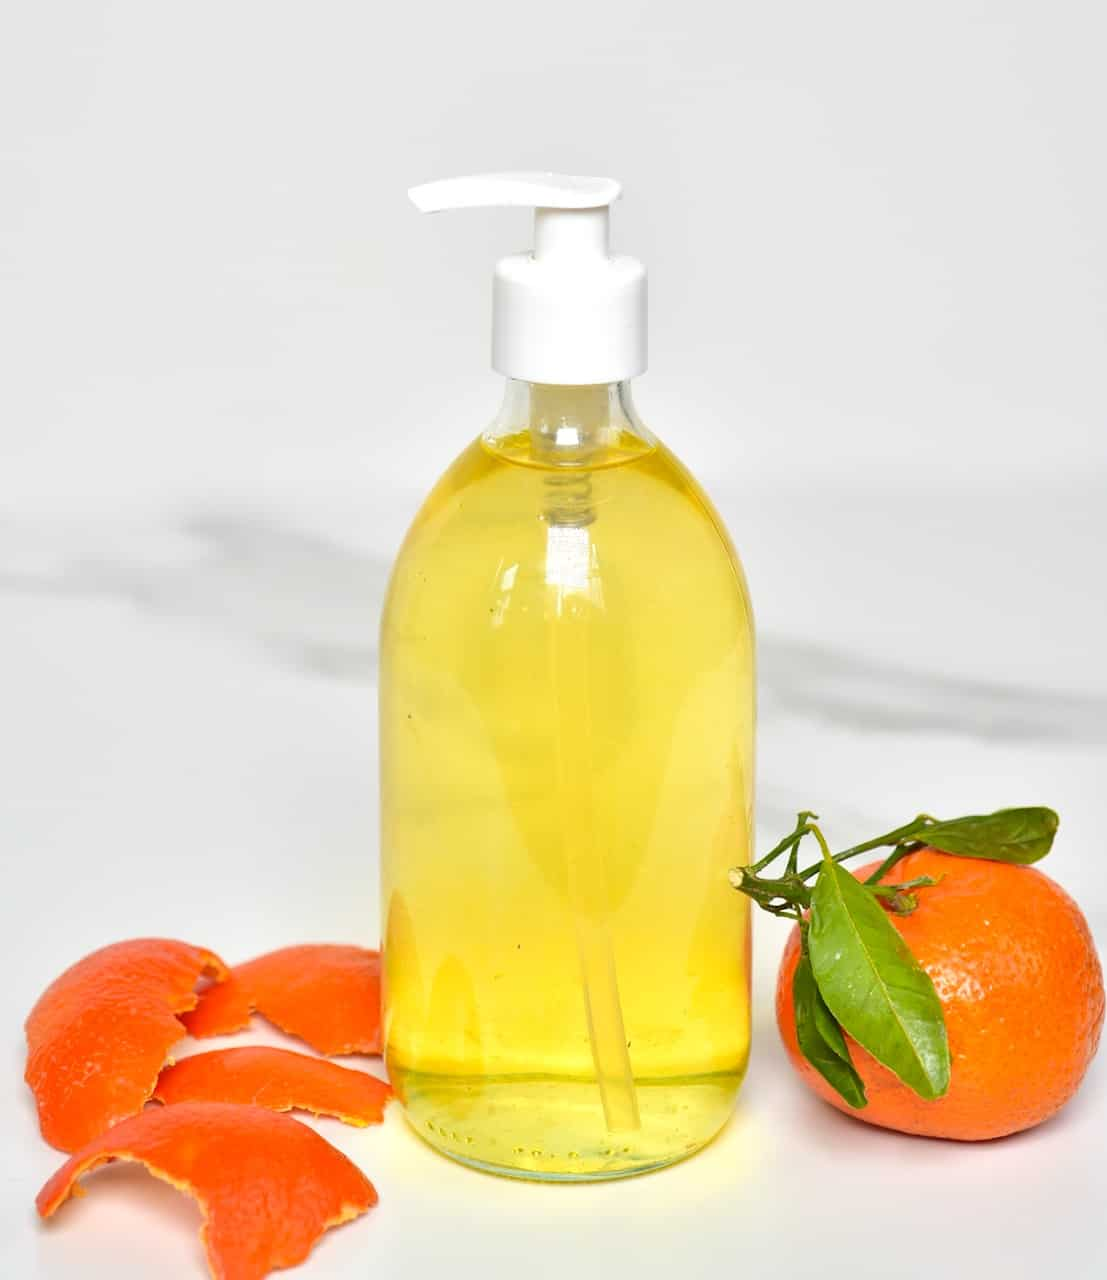 Zero Waste Homemade Citrus Cleaner - citrus cleaner ready to use